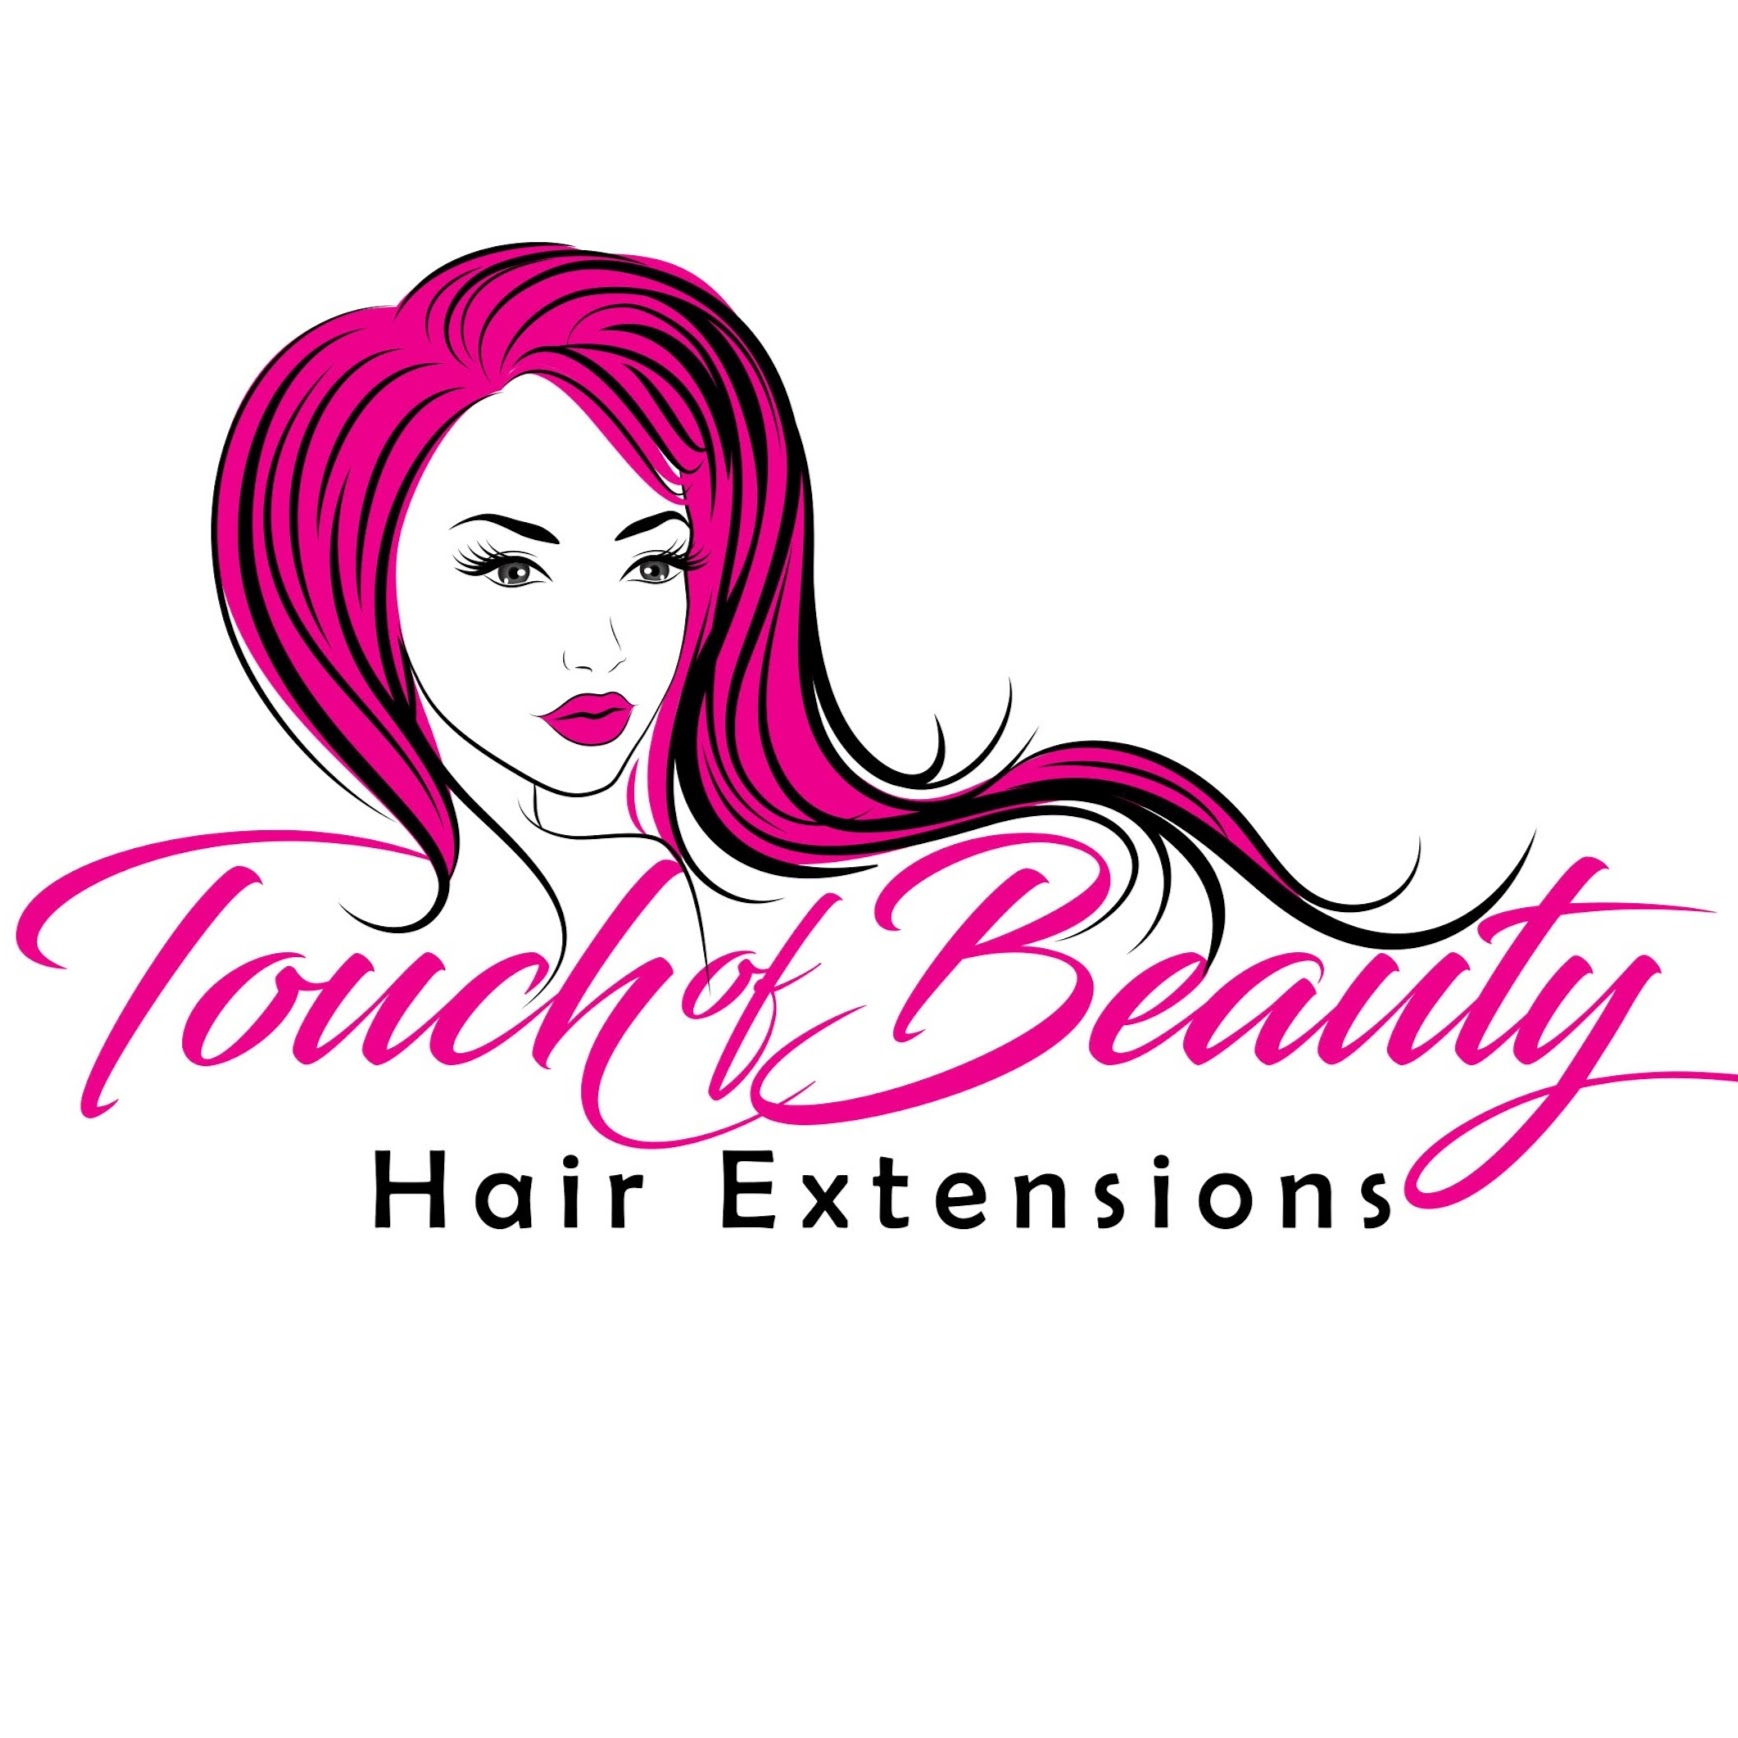 Touch of Beauty Hair Extensions LLC